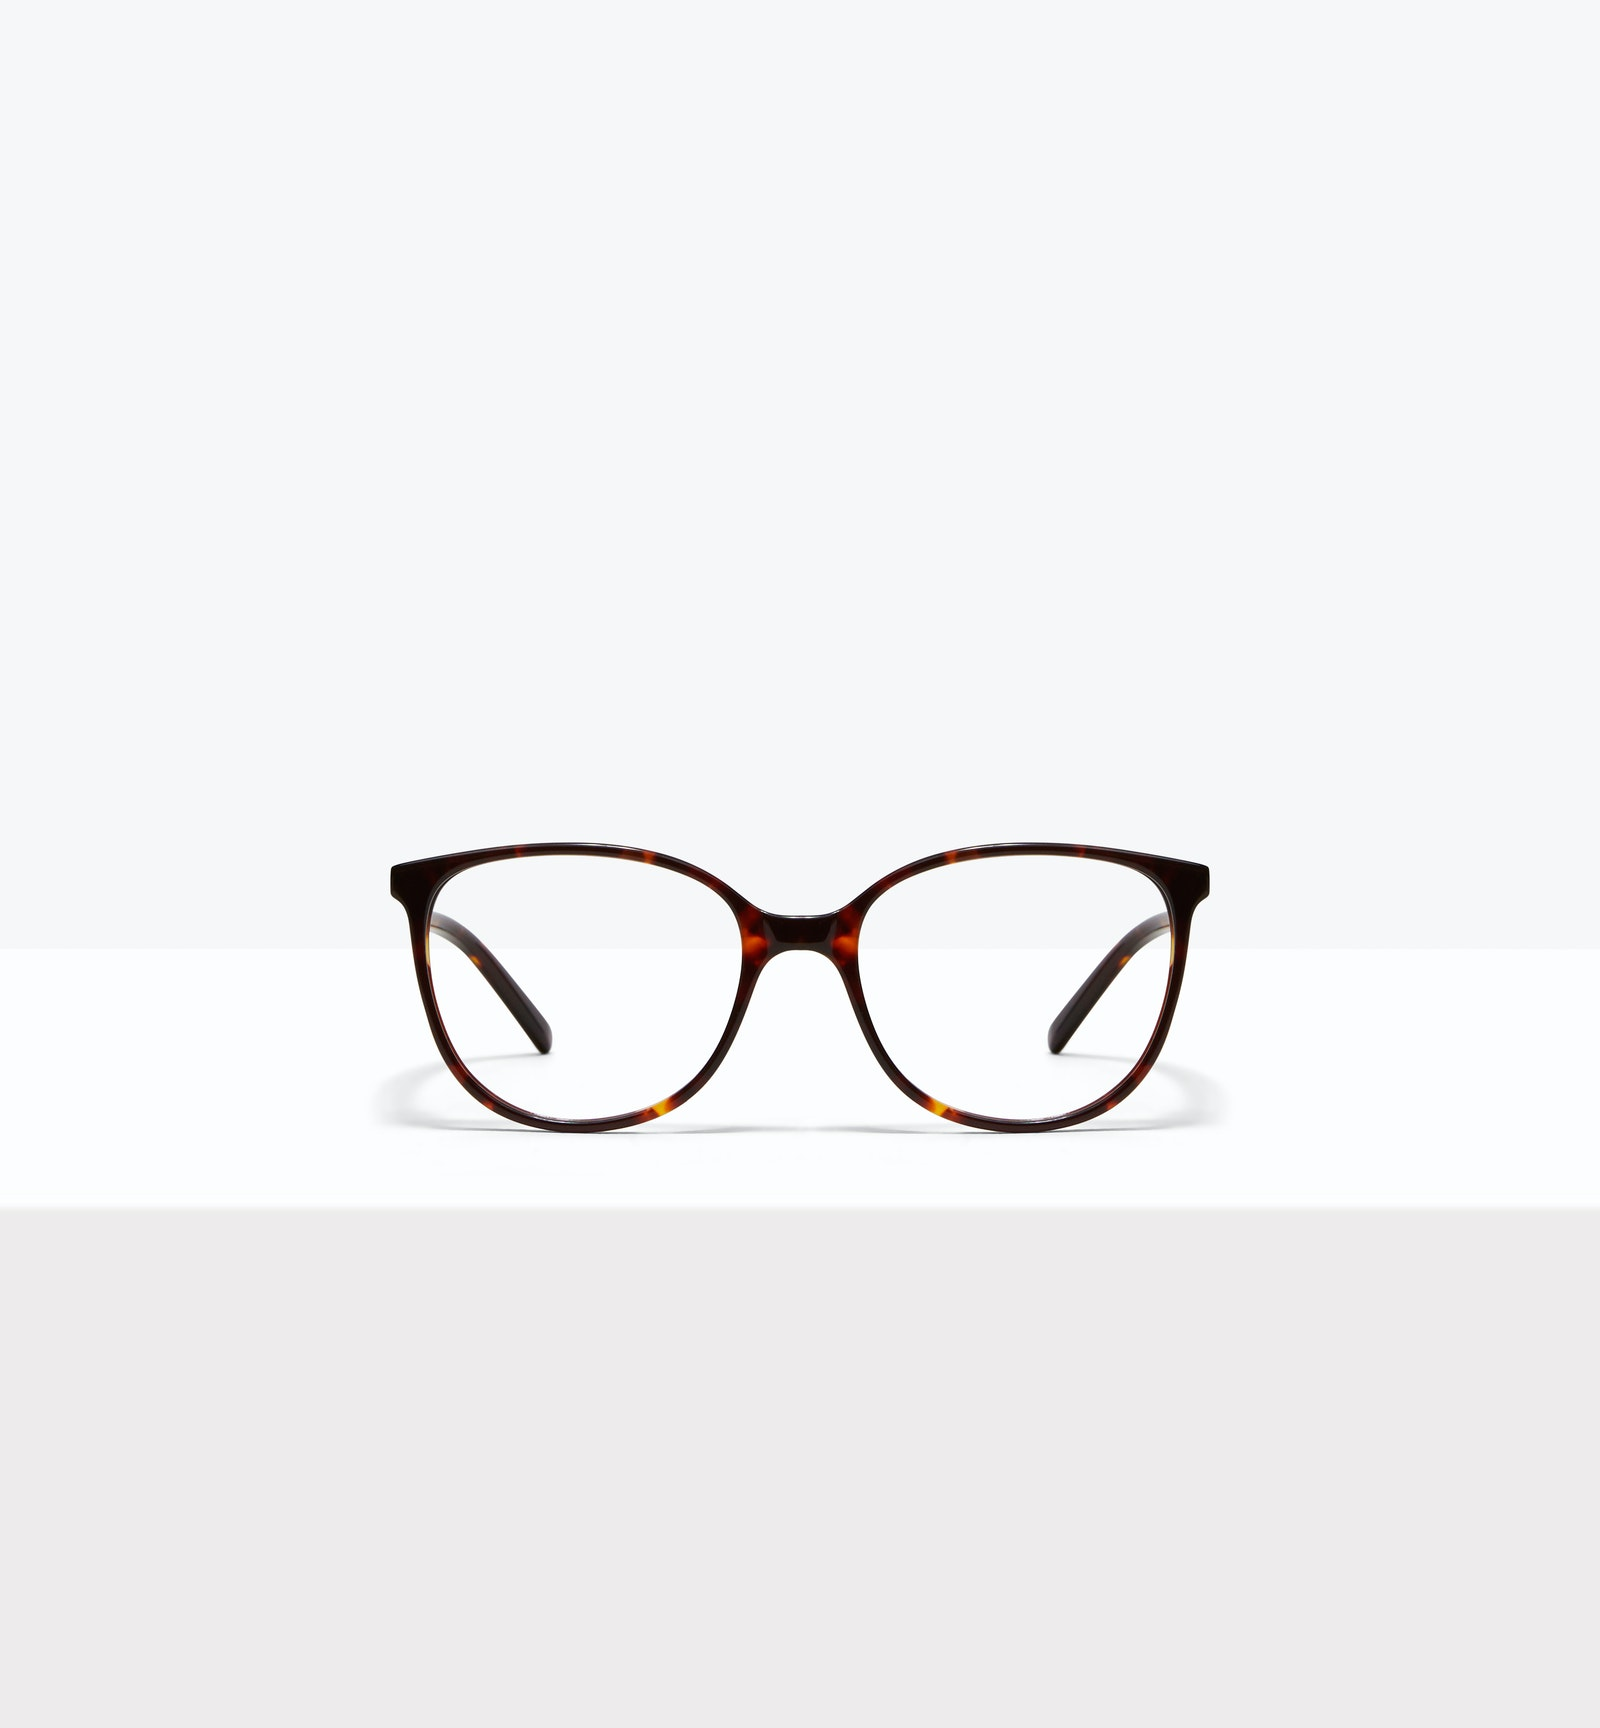 Affordable Fashion Glasses Round Eyeglasses Women Imagine Petite Sepia Kiss